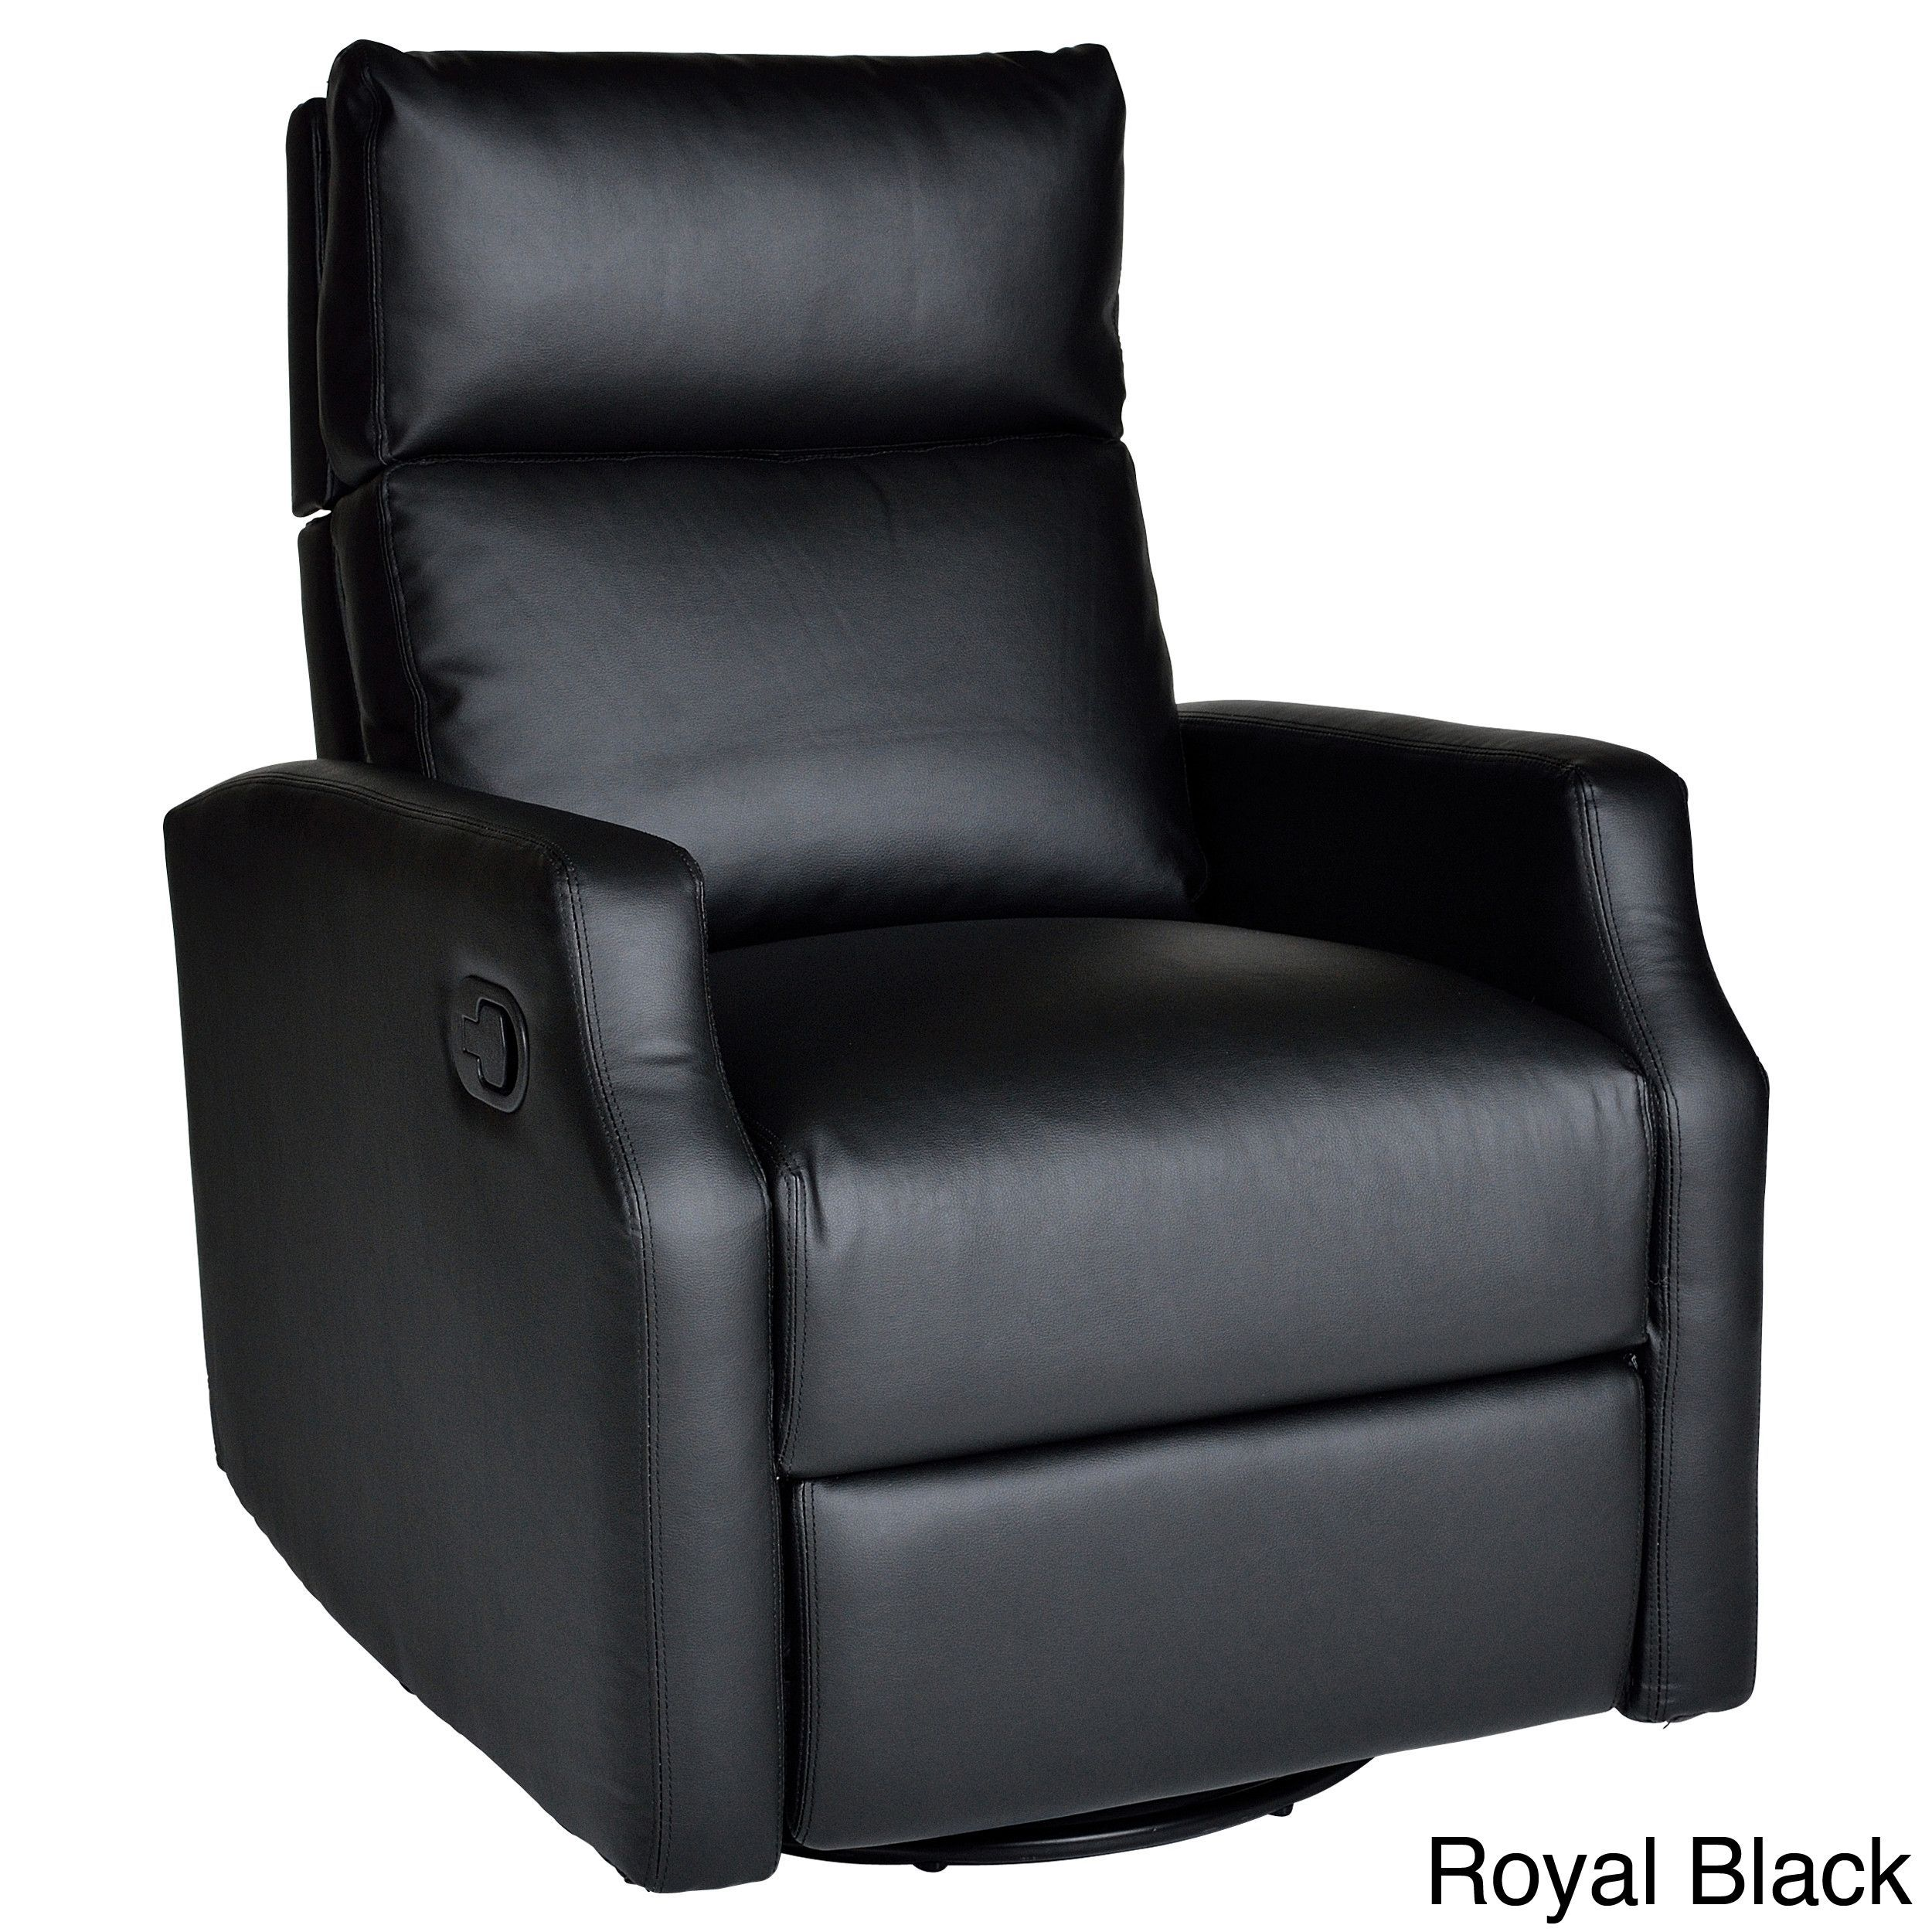 Morgan Leather Mission Recliner 0e0 494 Recl Mission Furniture Mission Style Furniture Furniture